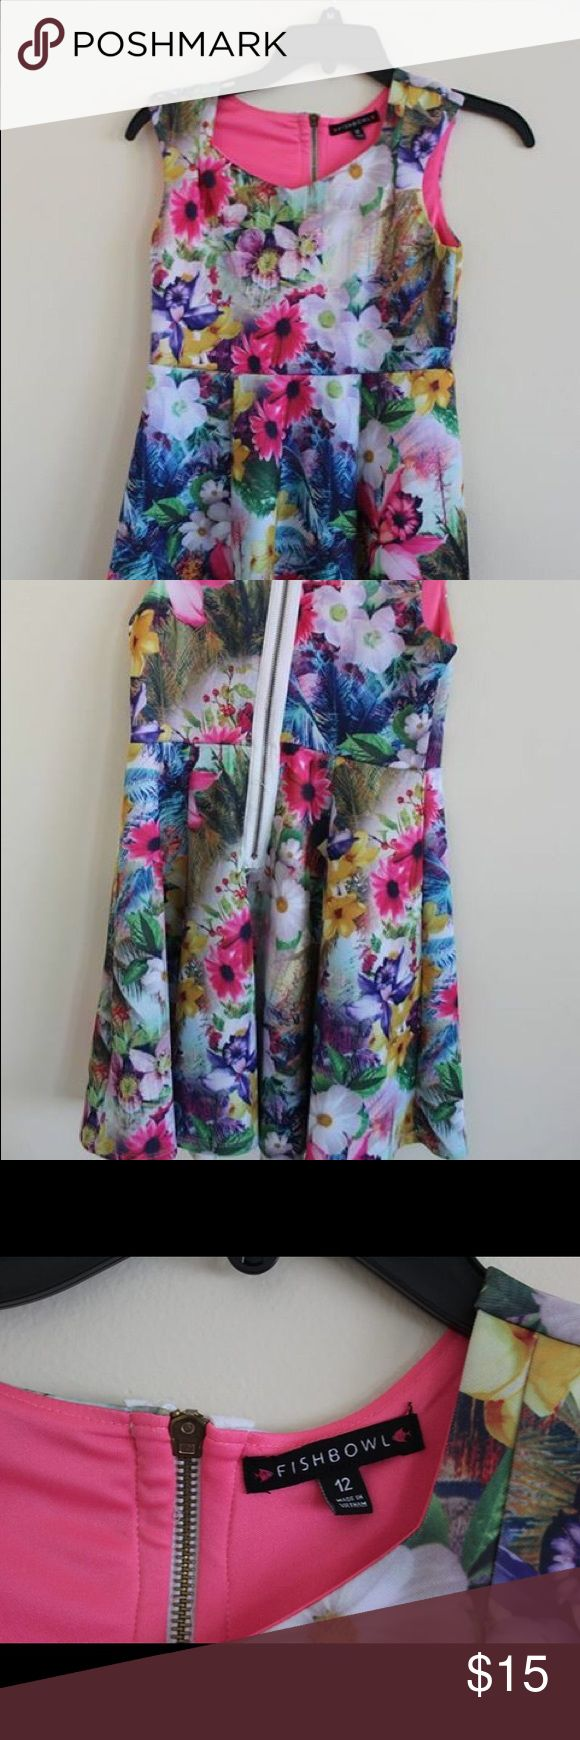 Beautiful Nordstrom girls flower dress. Colorful fun girls formal/casual dress. fishbowl Dresses